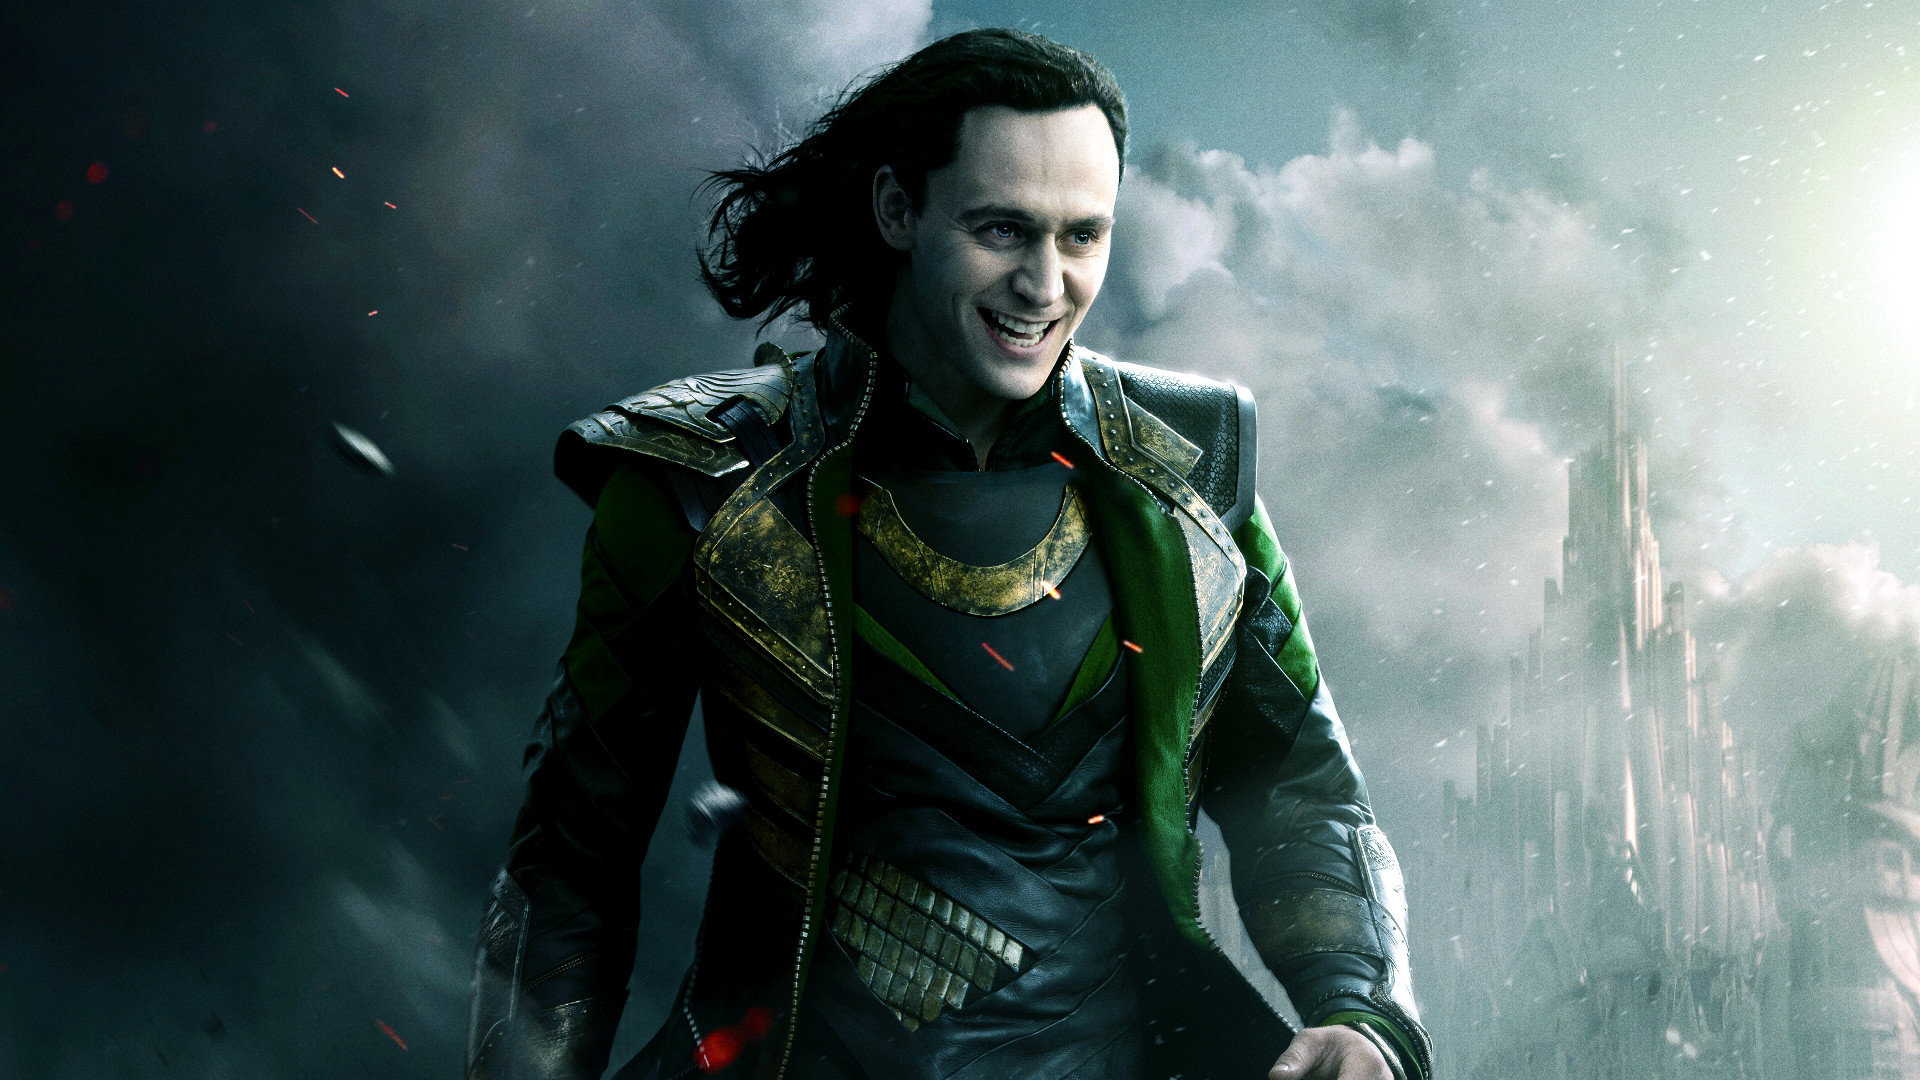 Free Download Thor The Dark World Wallpaper Id 438299 Full Hd For